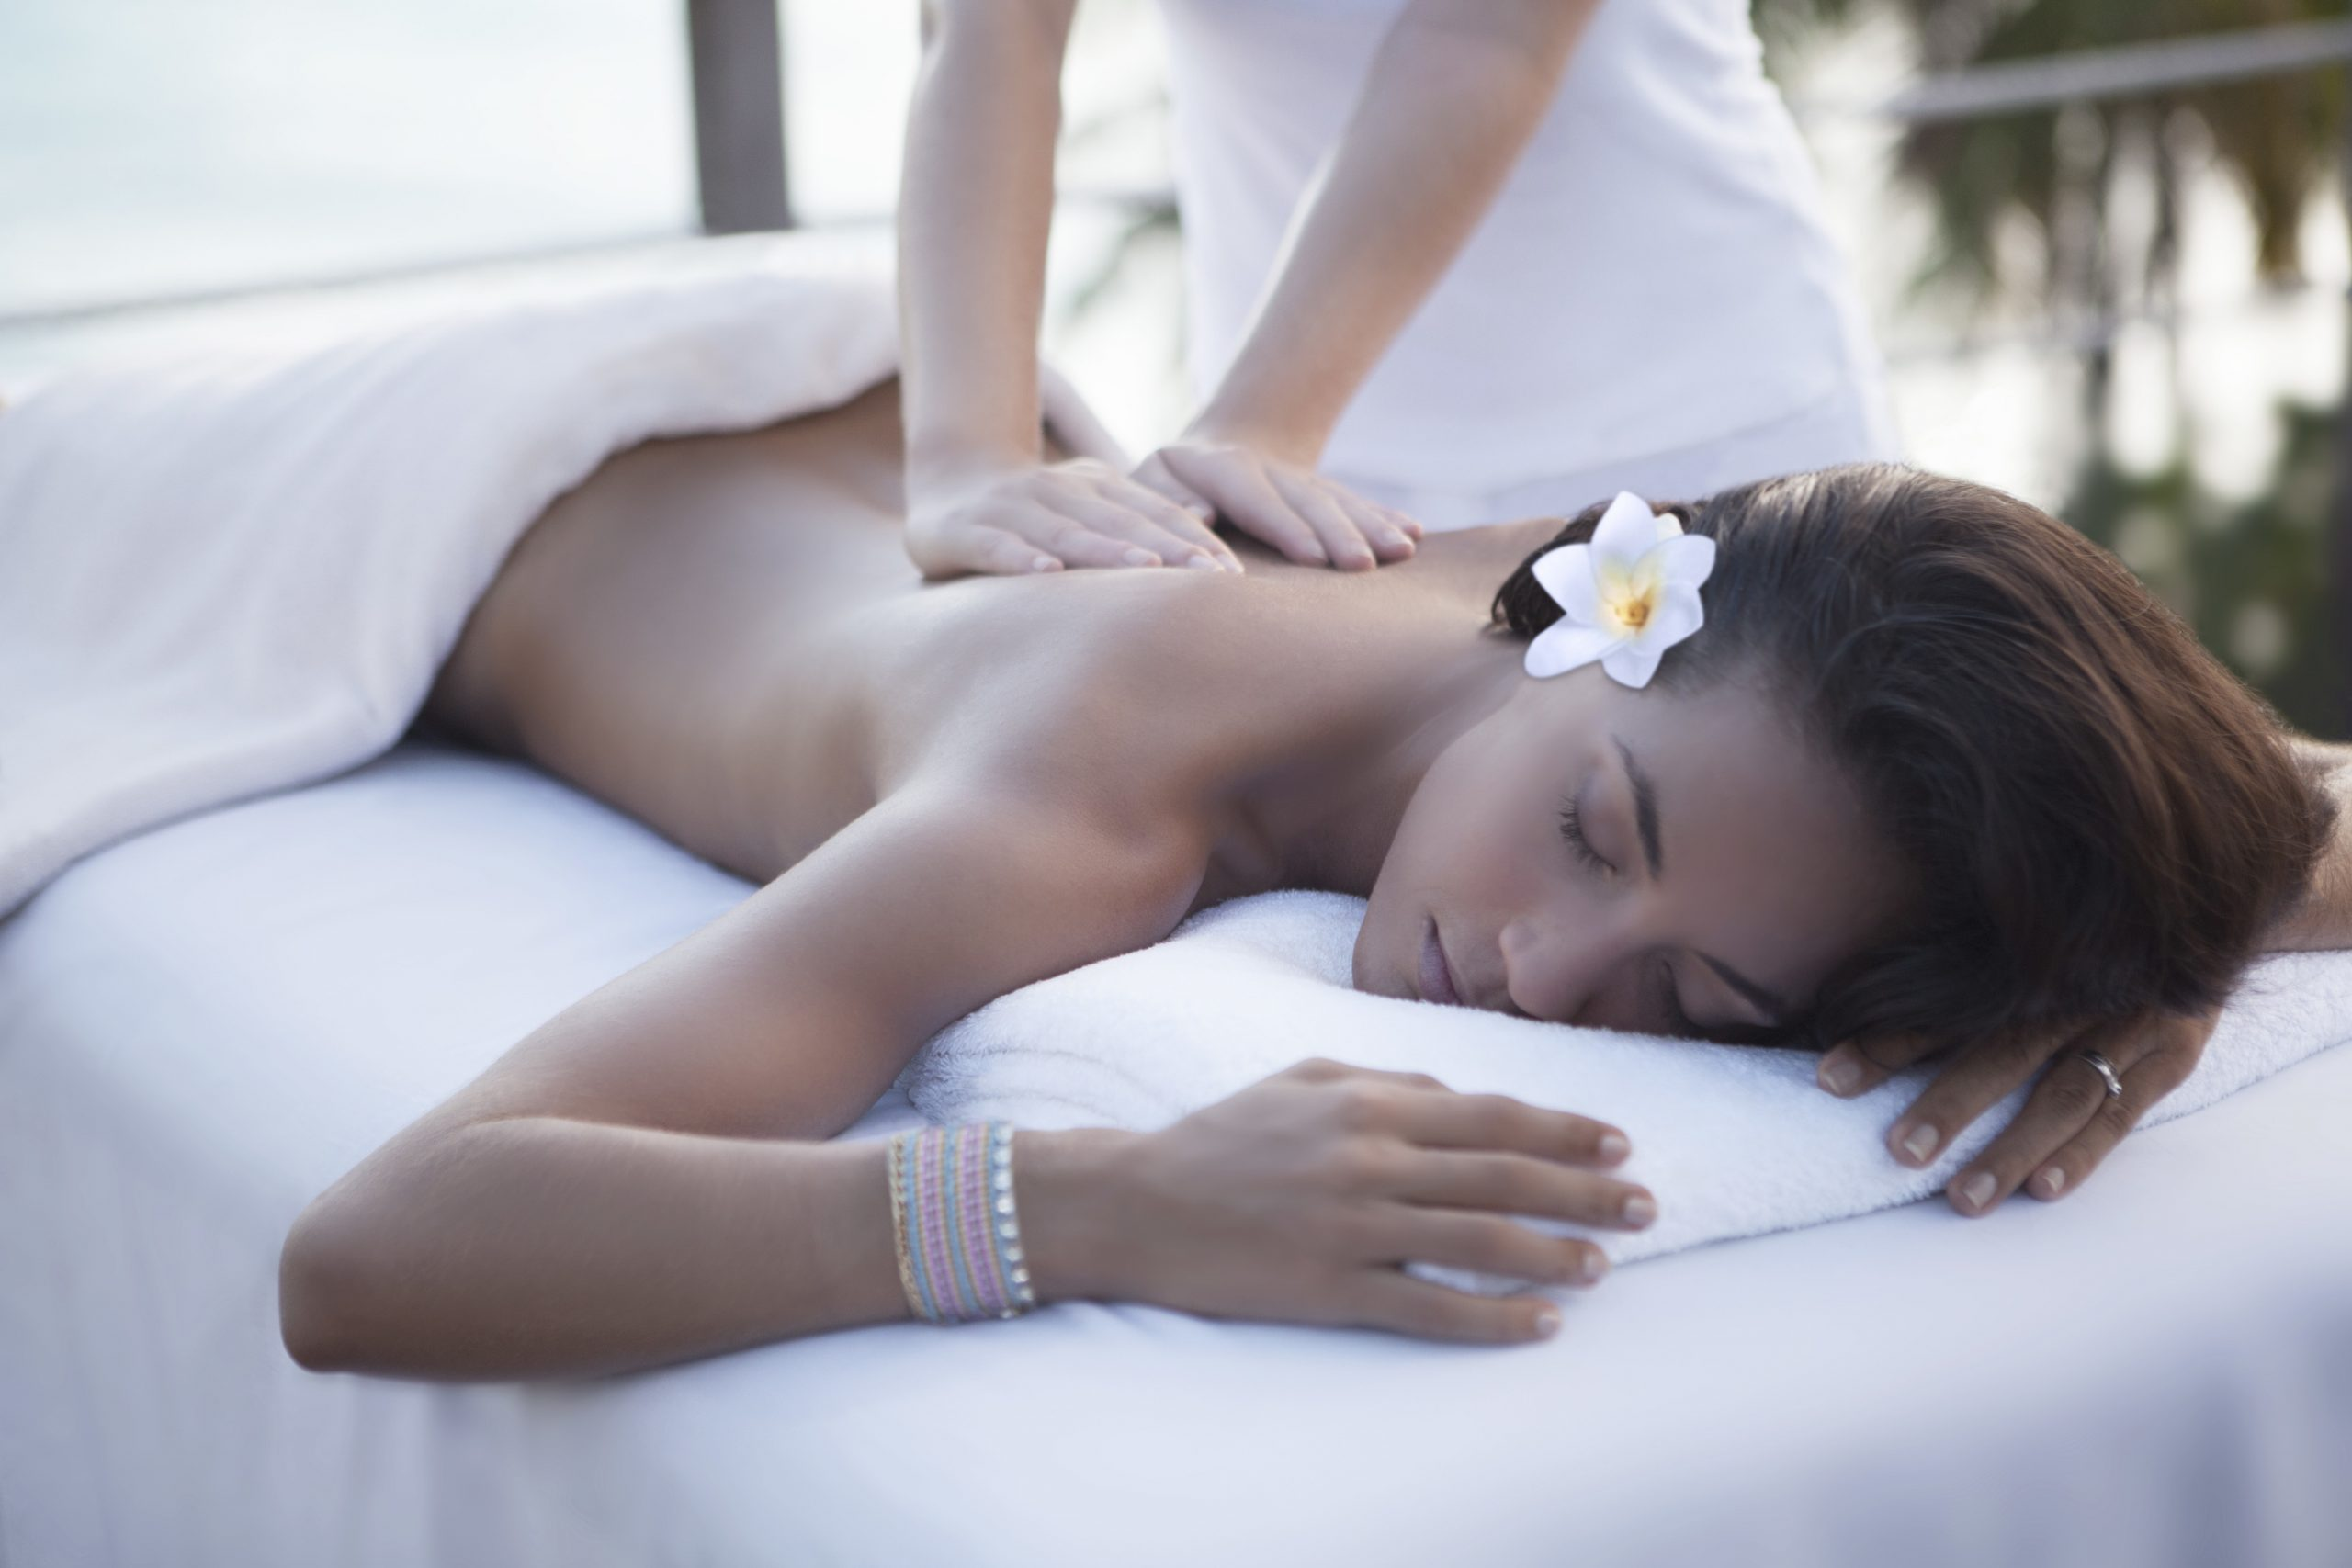 Candle Massage ,Balinese Massage ,Waxing ,Spas near me ,Spas in Uvongo ,Spas in South coast ,Best Spa in South coast ,Top Spas in South Africa ,Top Spas in South Coast ,Tops Spa in Lower ,South Coast ,Affordable Spa , Spa with Sea view , Sea view, Foot Massage, Thai leg massage, Very clean spa, professional staff, qualified therapist, specials, best massages near me, best massage, best couples massage near me, Matis, Matis Facials, Luma, Luma Facials, Brightening , Skin care, Body Butter Candles ,Deep tissue massage ,Covid 19 certified for spa protocols